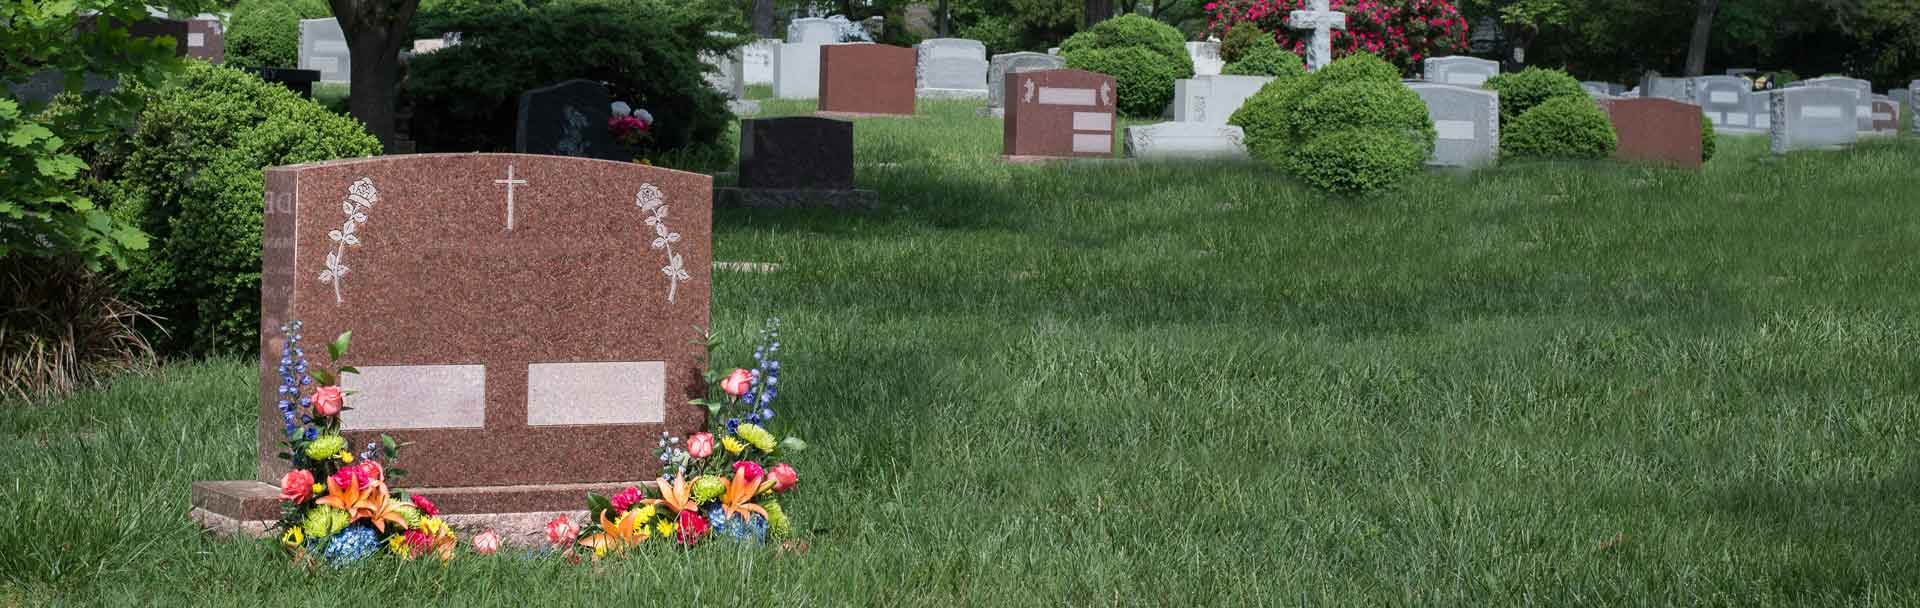 Cemetery flowers and tribute program karins florist official site cemetery flowers izmirmasajfo